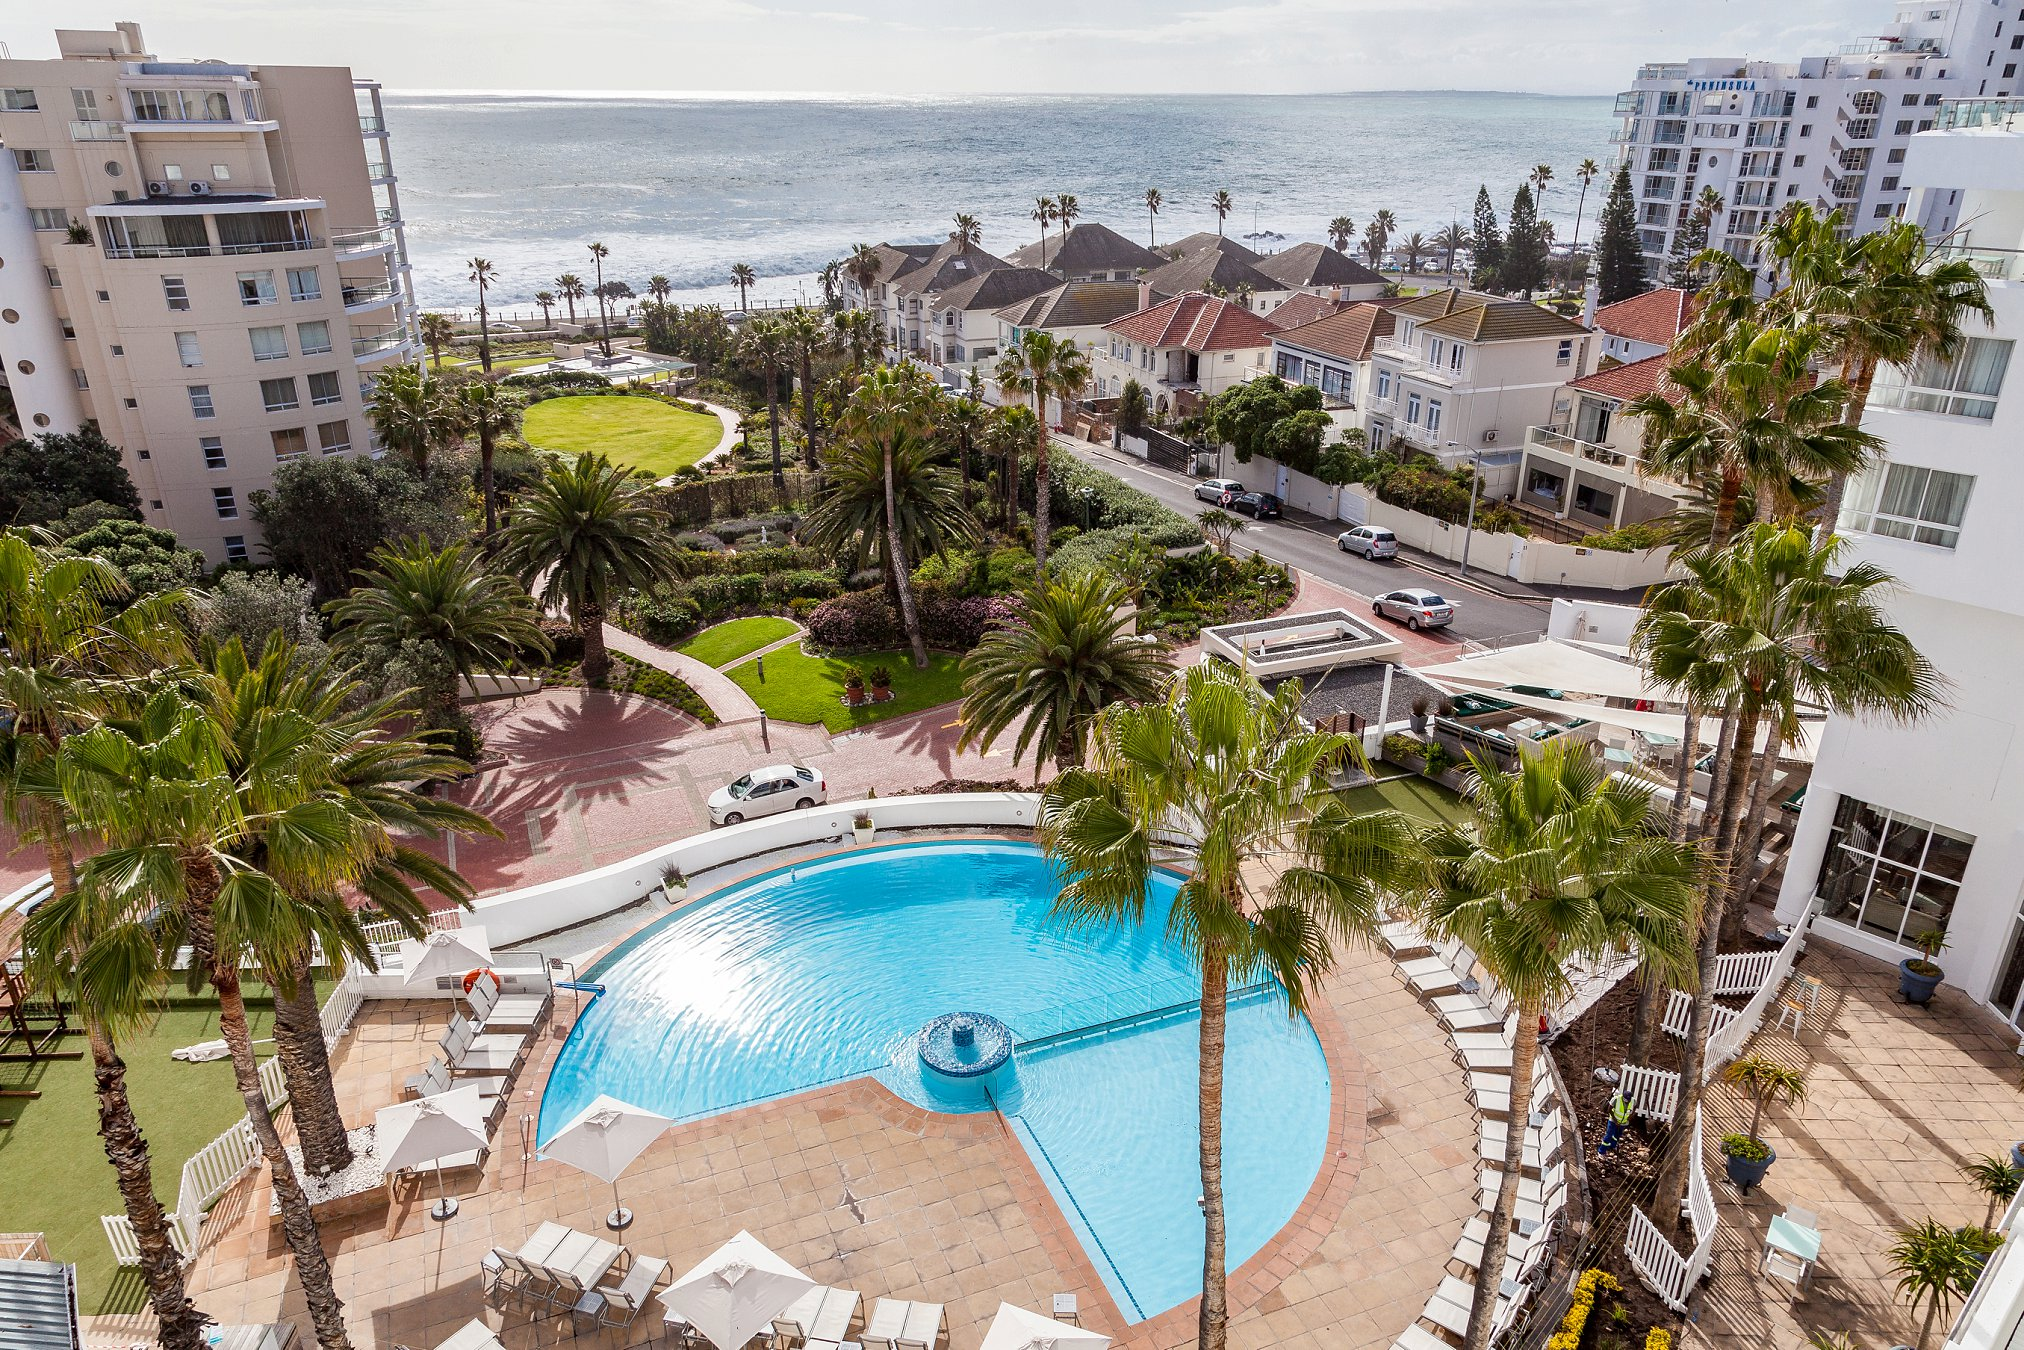 Linger Longer at The Pool with Overnight Stay, Breakfast and Late Check-Out